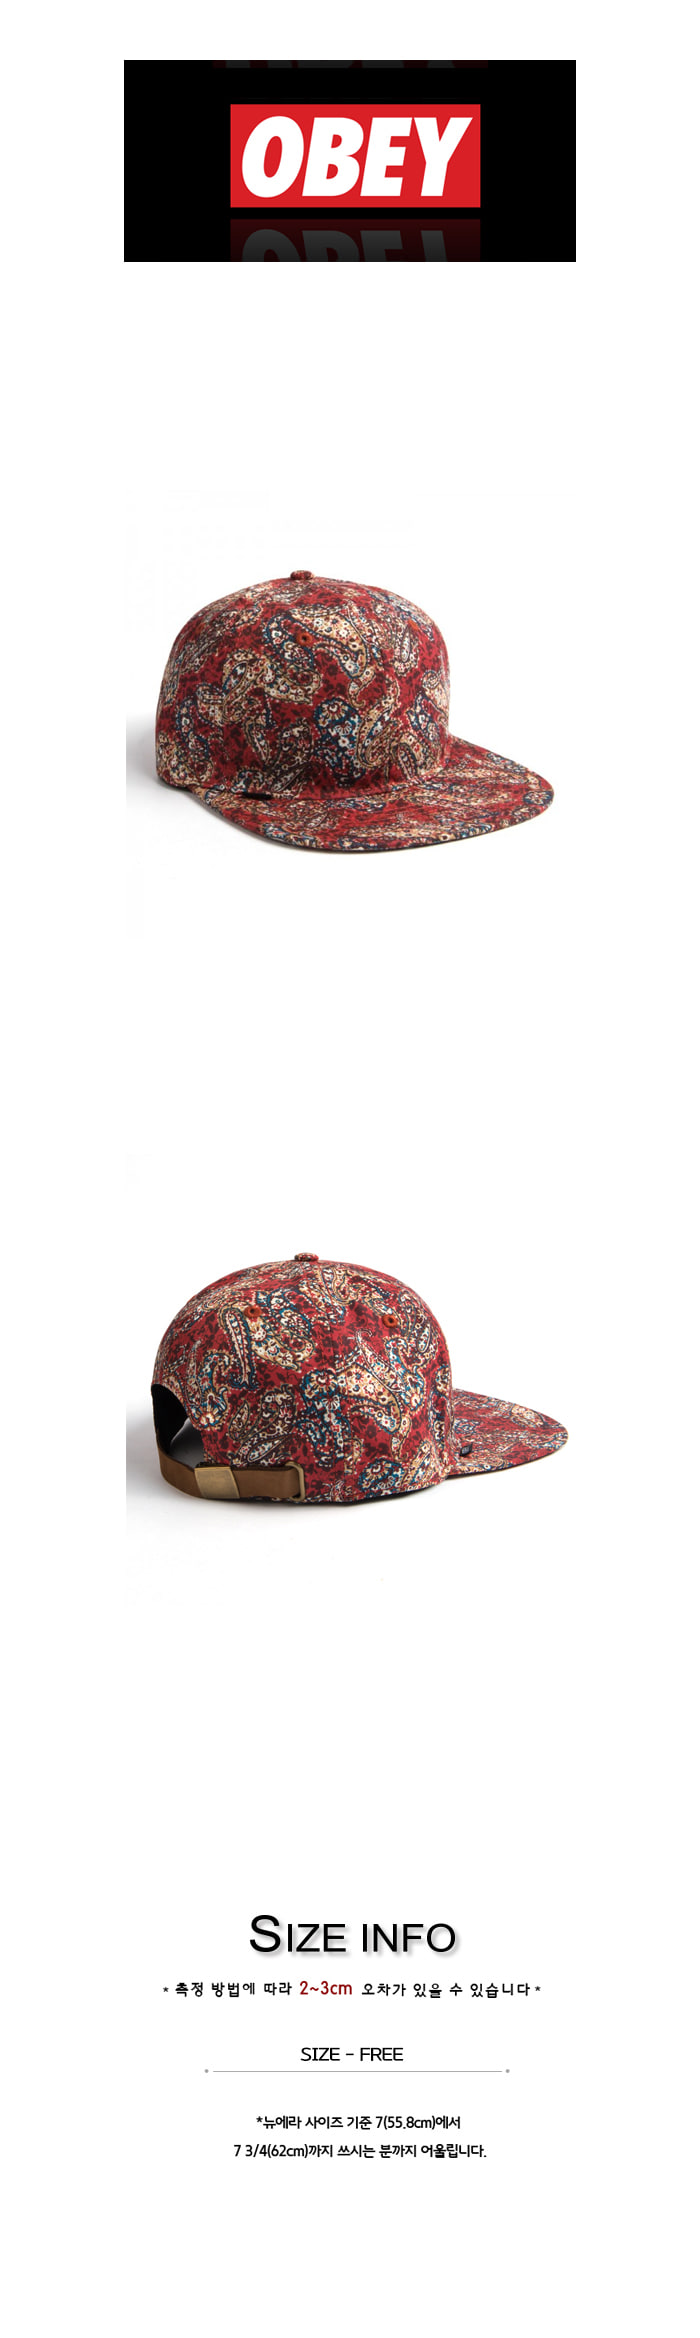 OBEY MARSEILLES HAT LUXE HATS